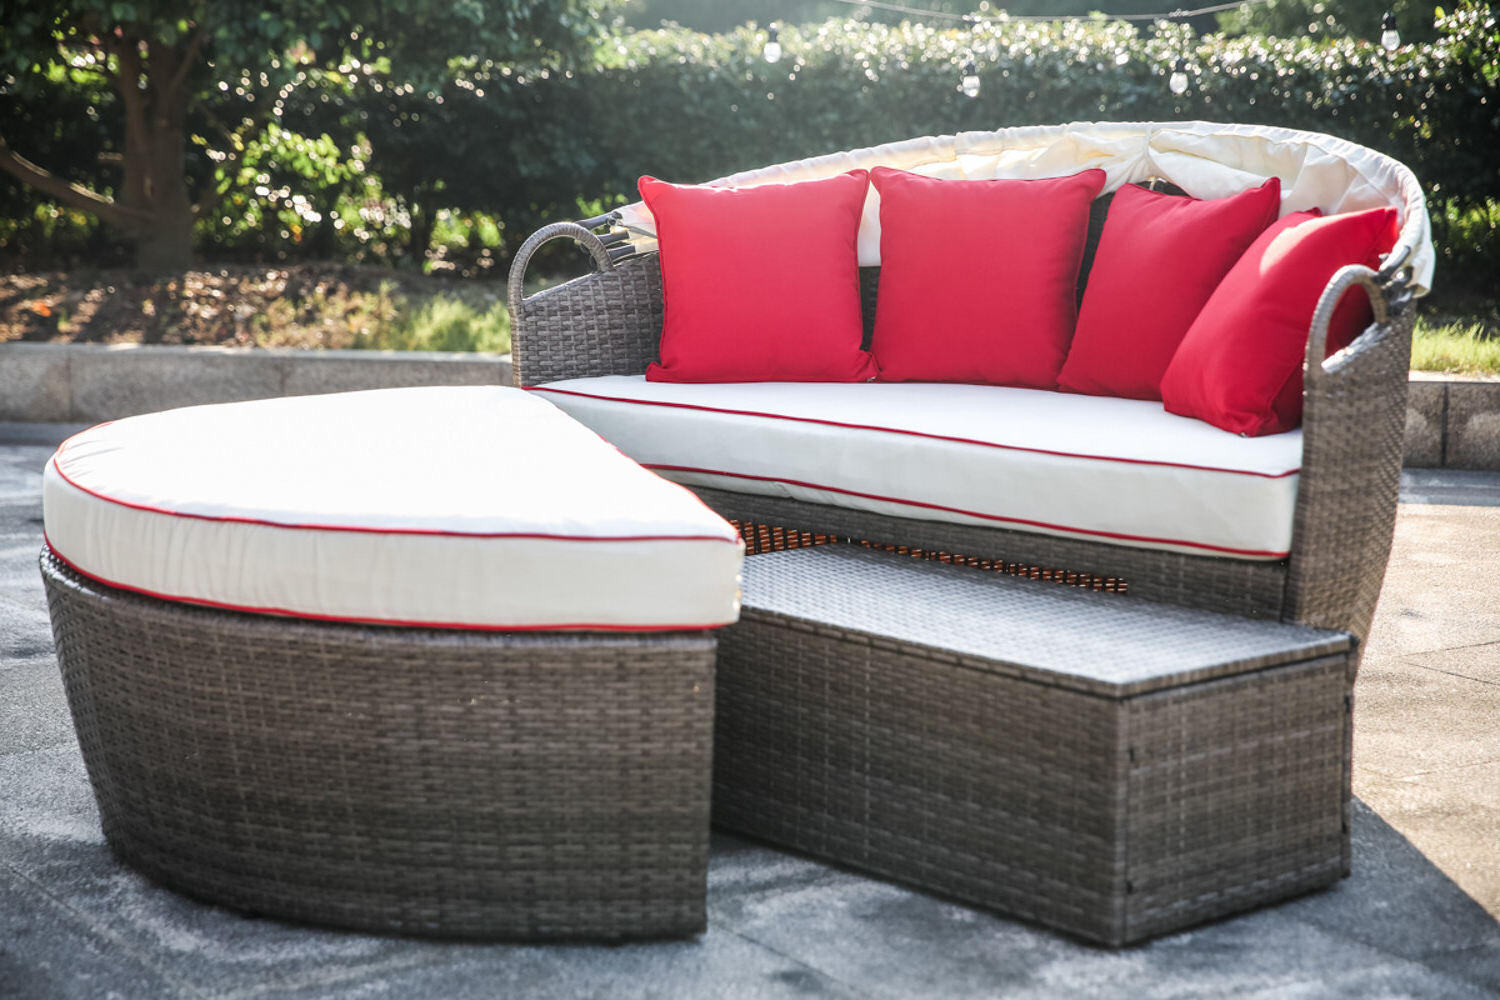 Falmouth Patio Daybeds With Cushions Inside Favorite Fansler Patio Daybed With Cushions (View 3 of 20)